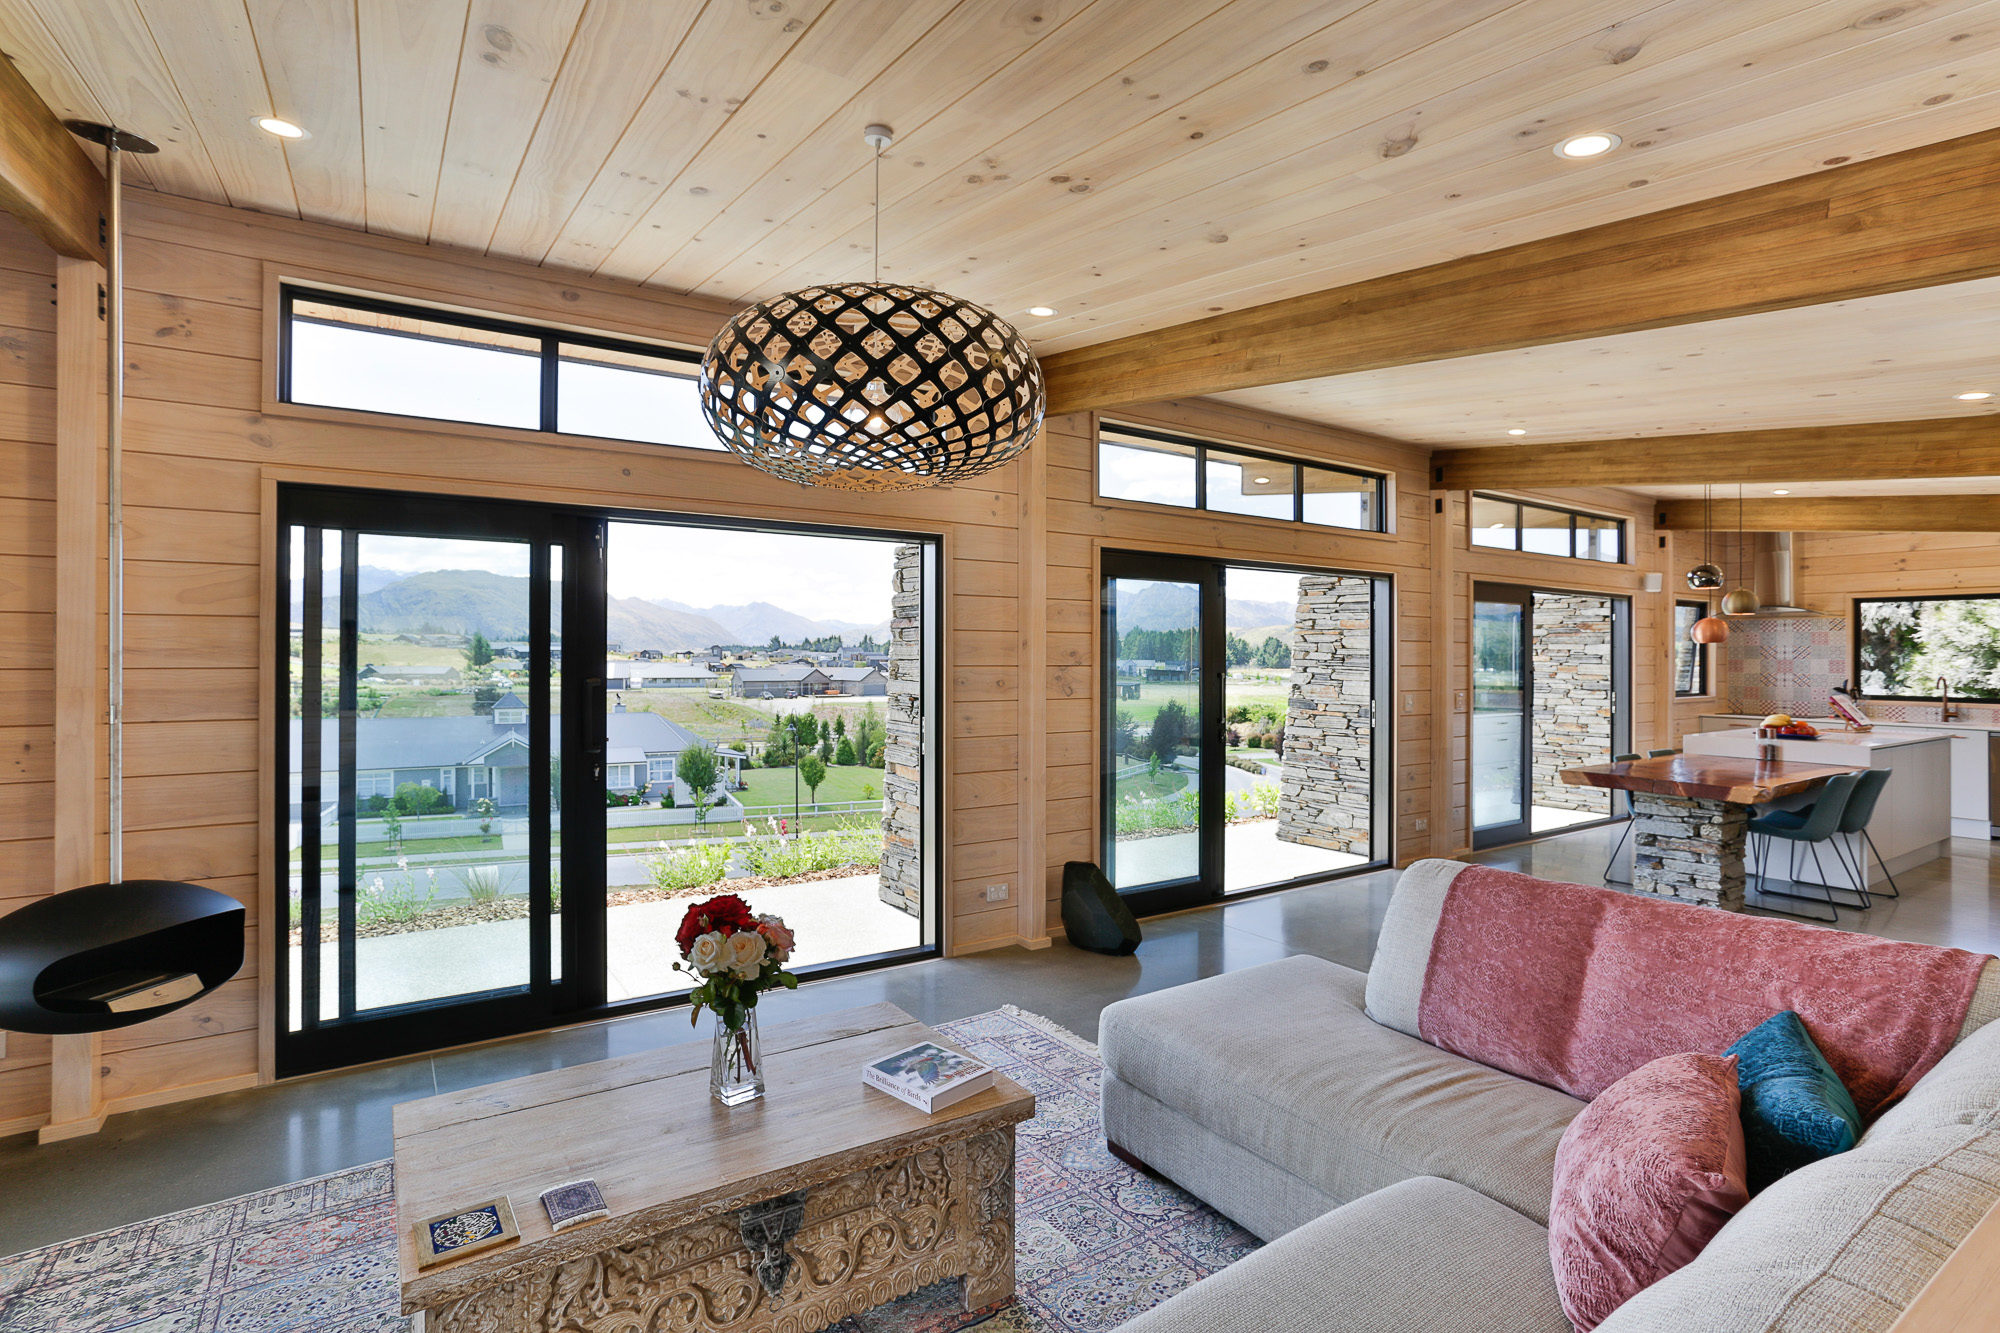 Large sliding doors frame the amazing view